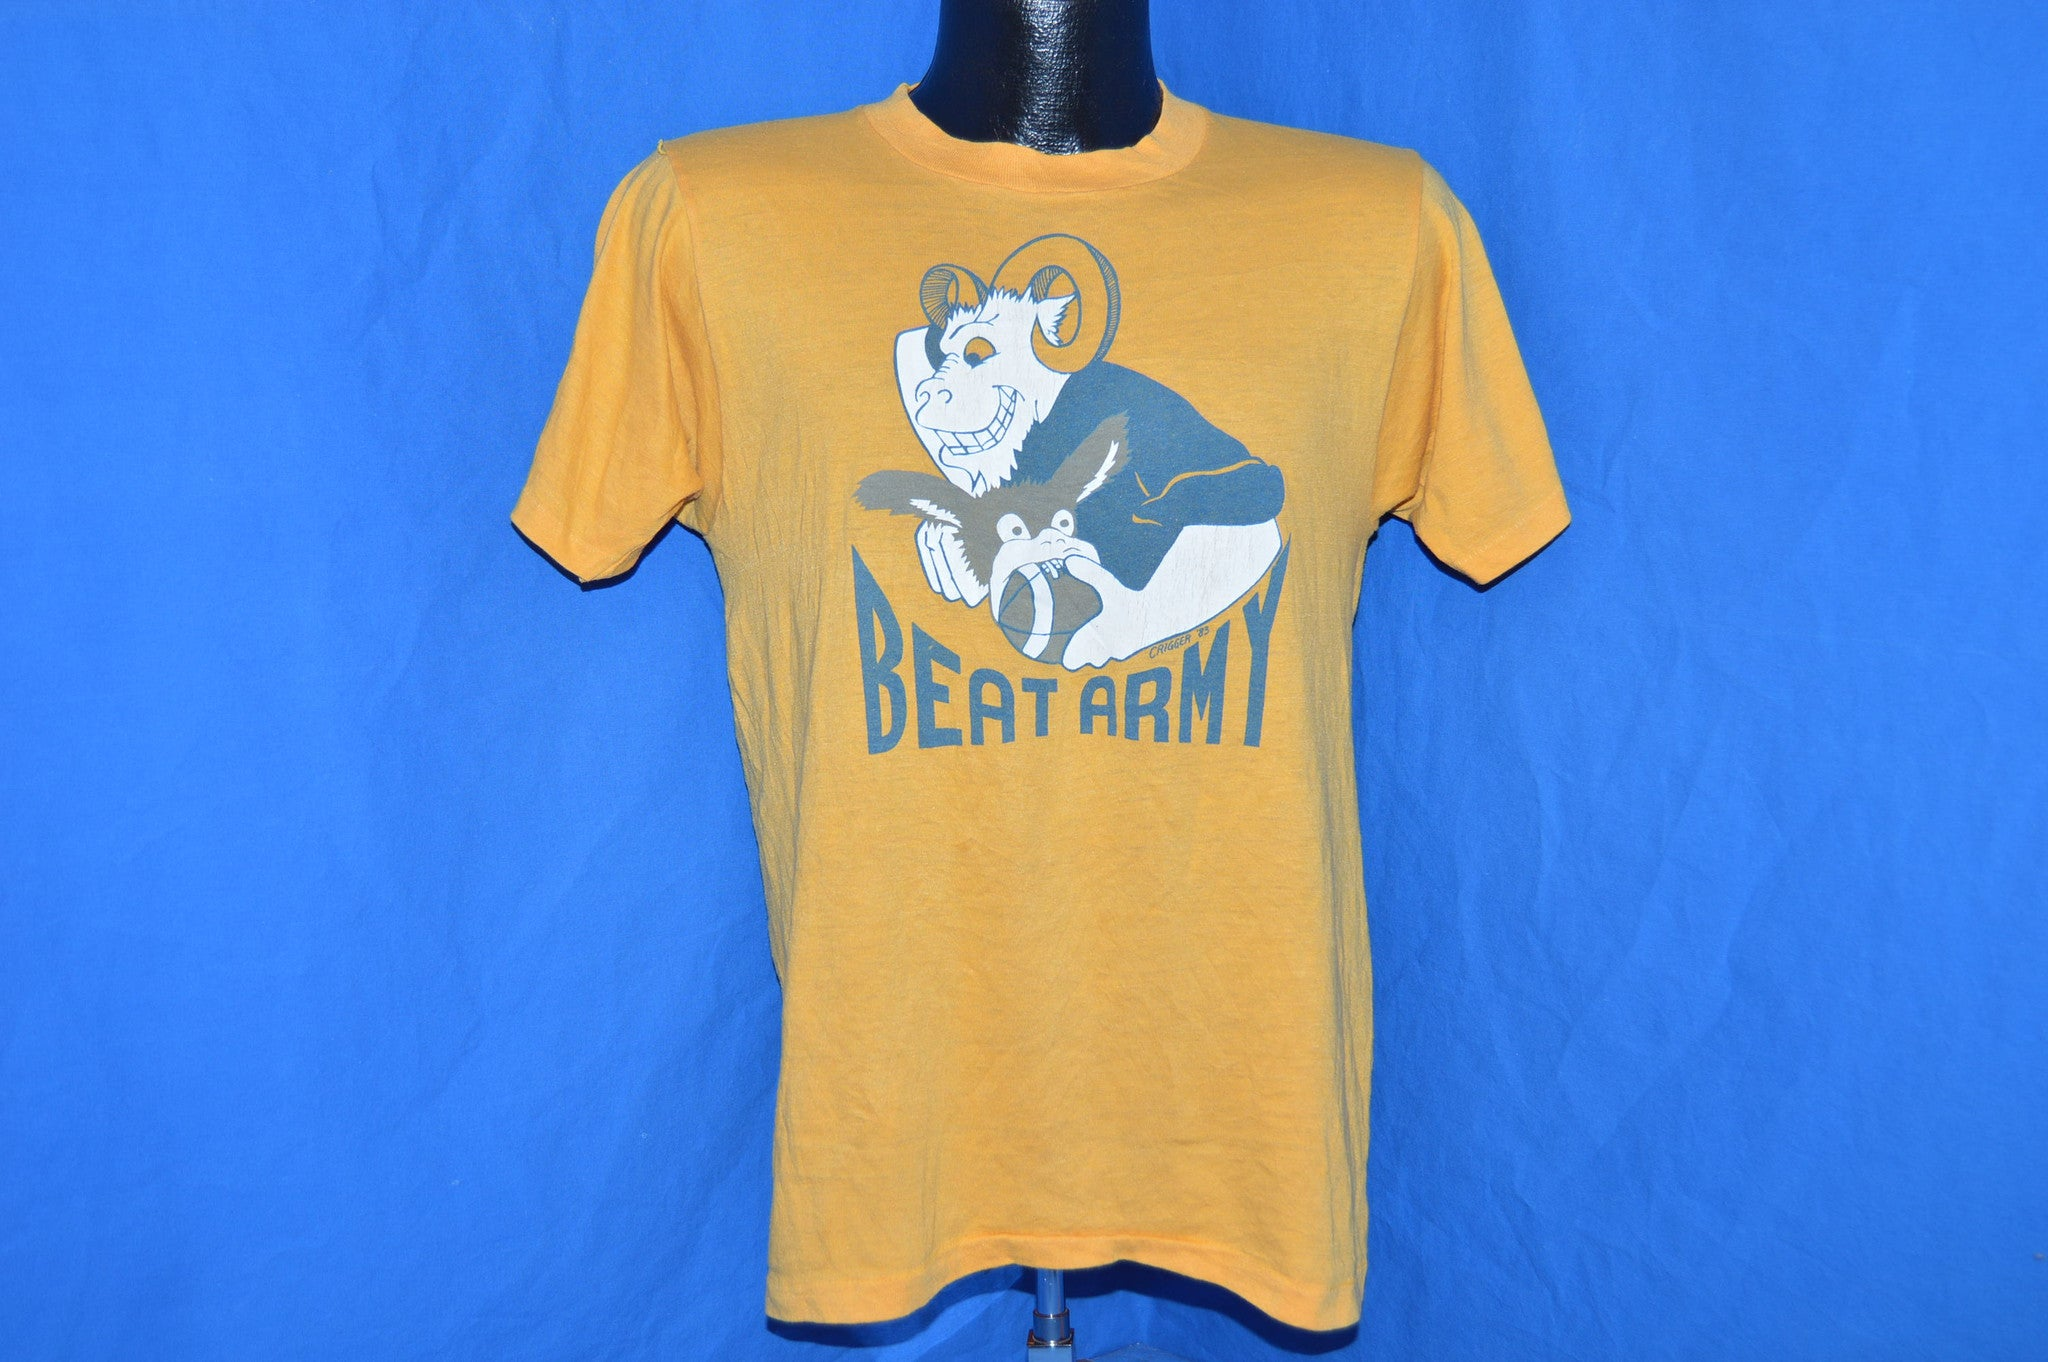 28a8c42a84d 70s Beat Army Navy Midshipmen Football t-shirt Small - The Captains ...